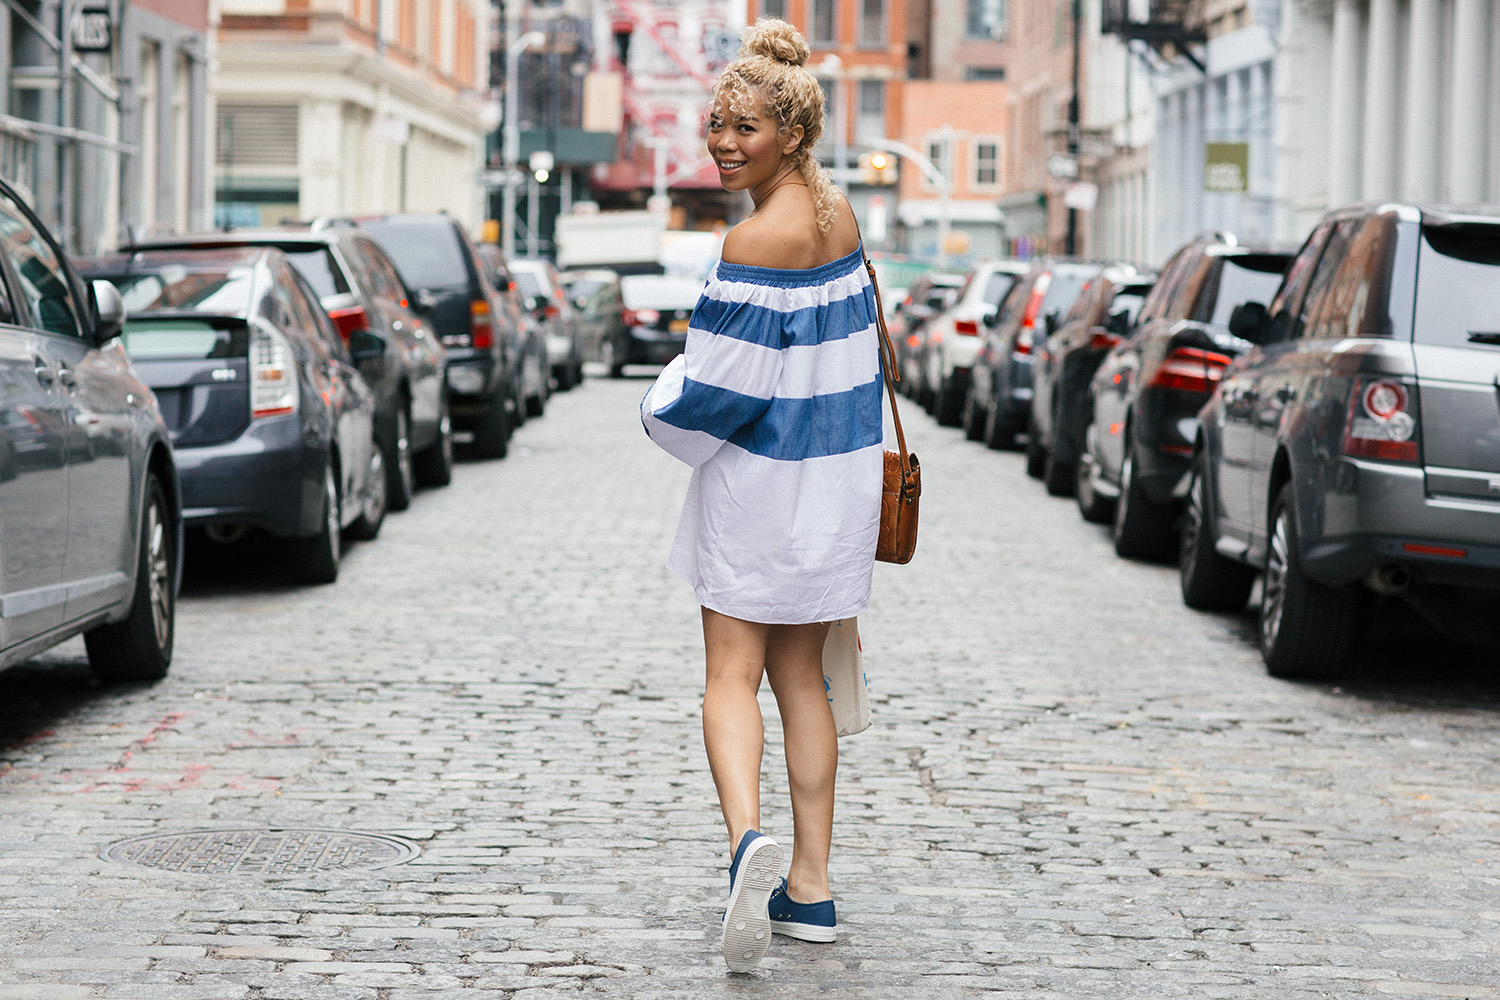 sneakers-with-dresses-outfit-ideas.jpg